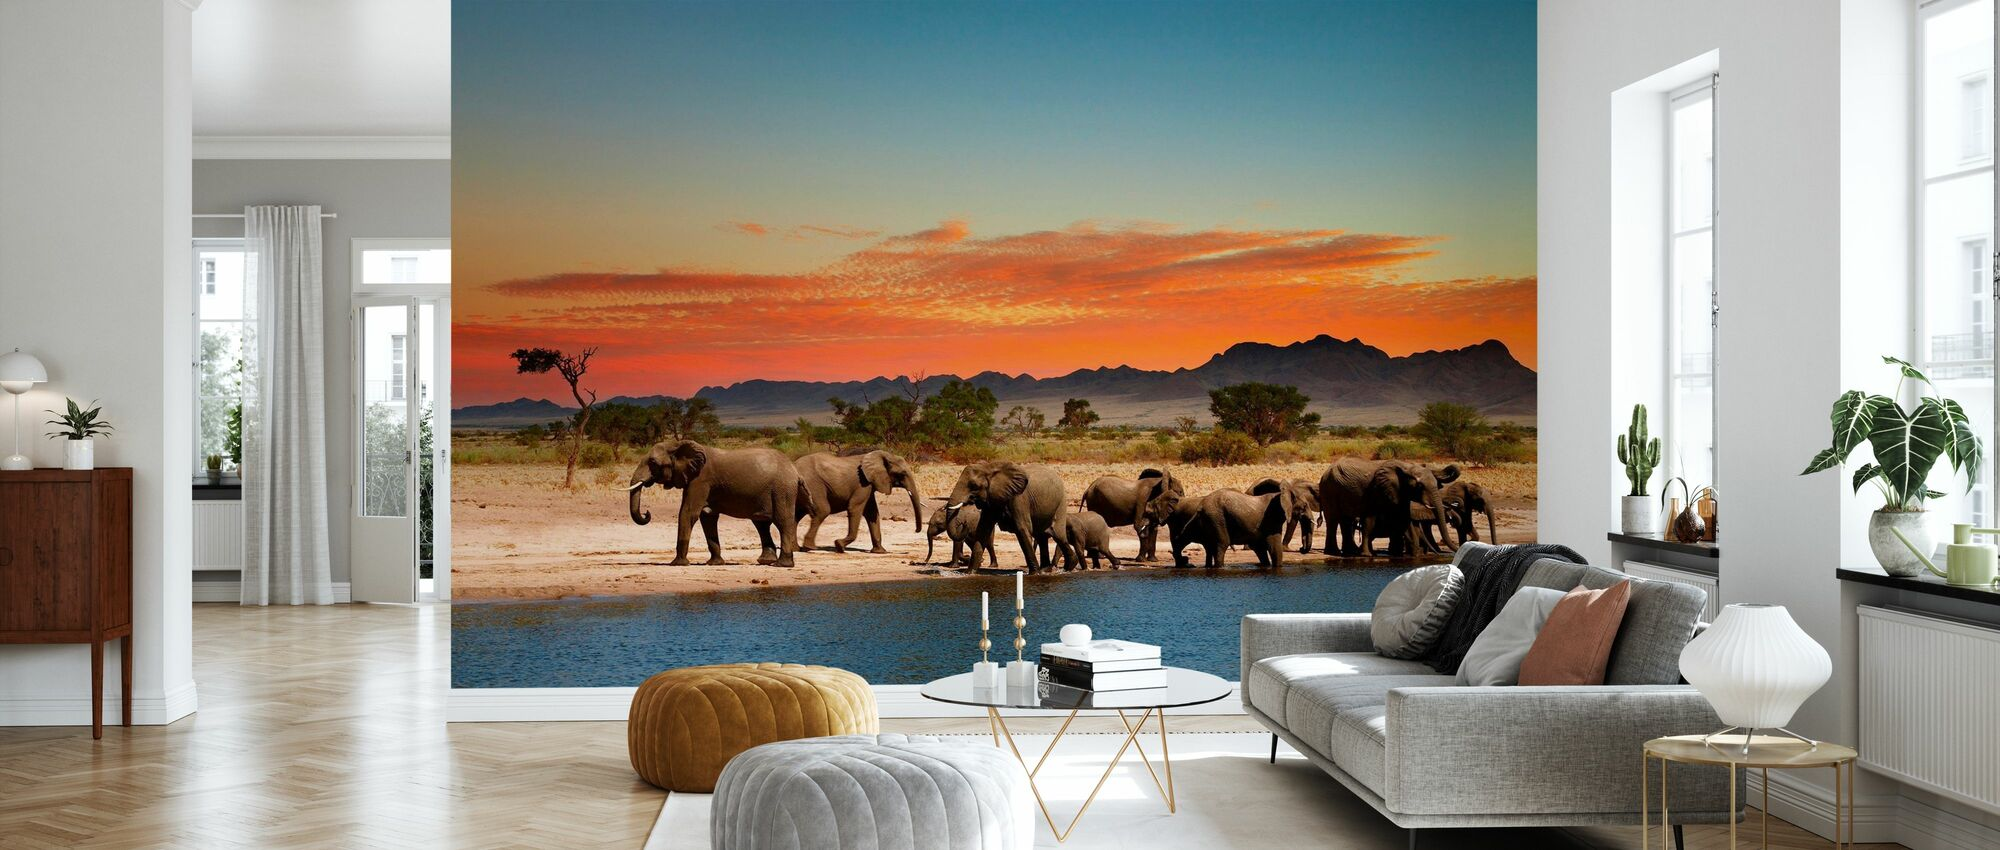 Herd of Elephants - Wallpaper - Living Room